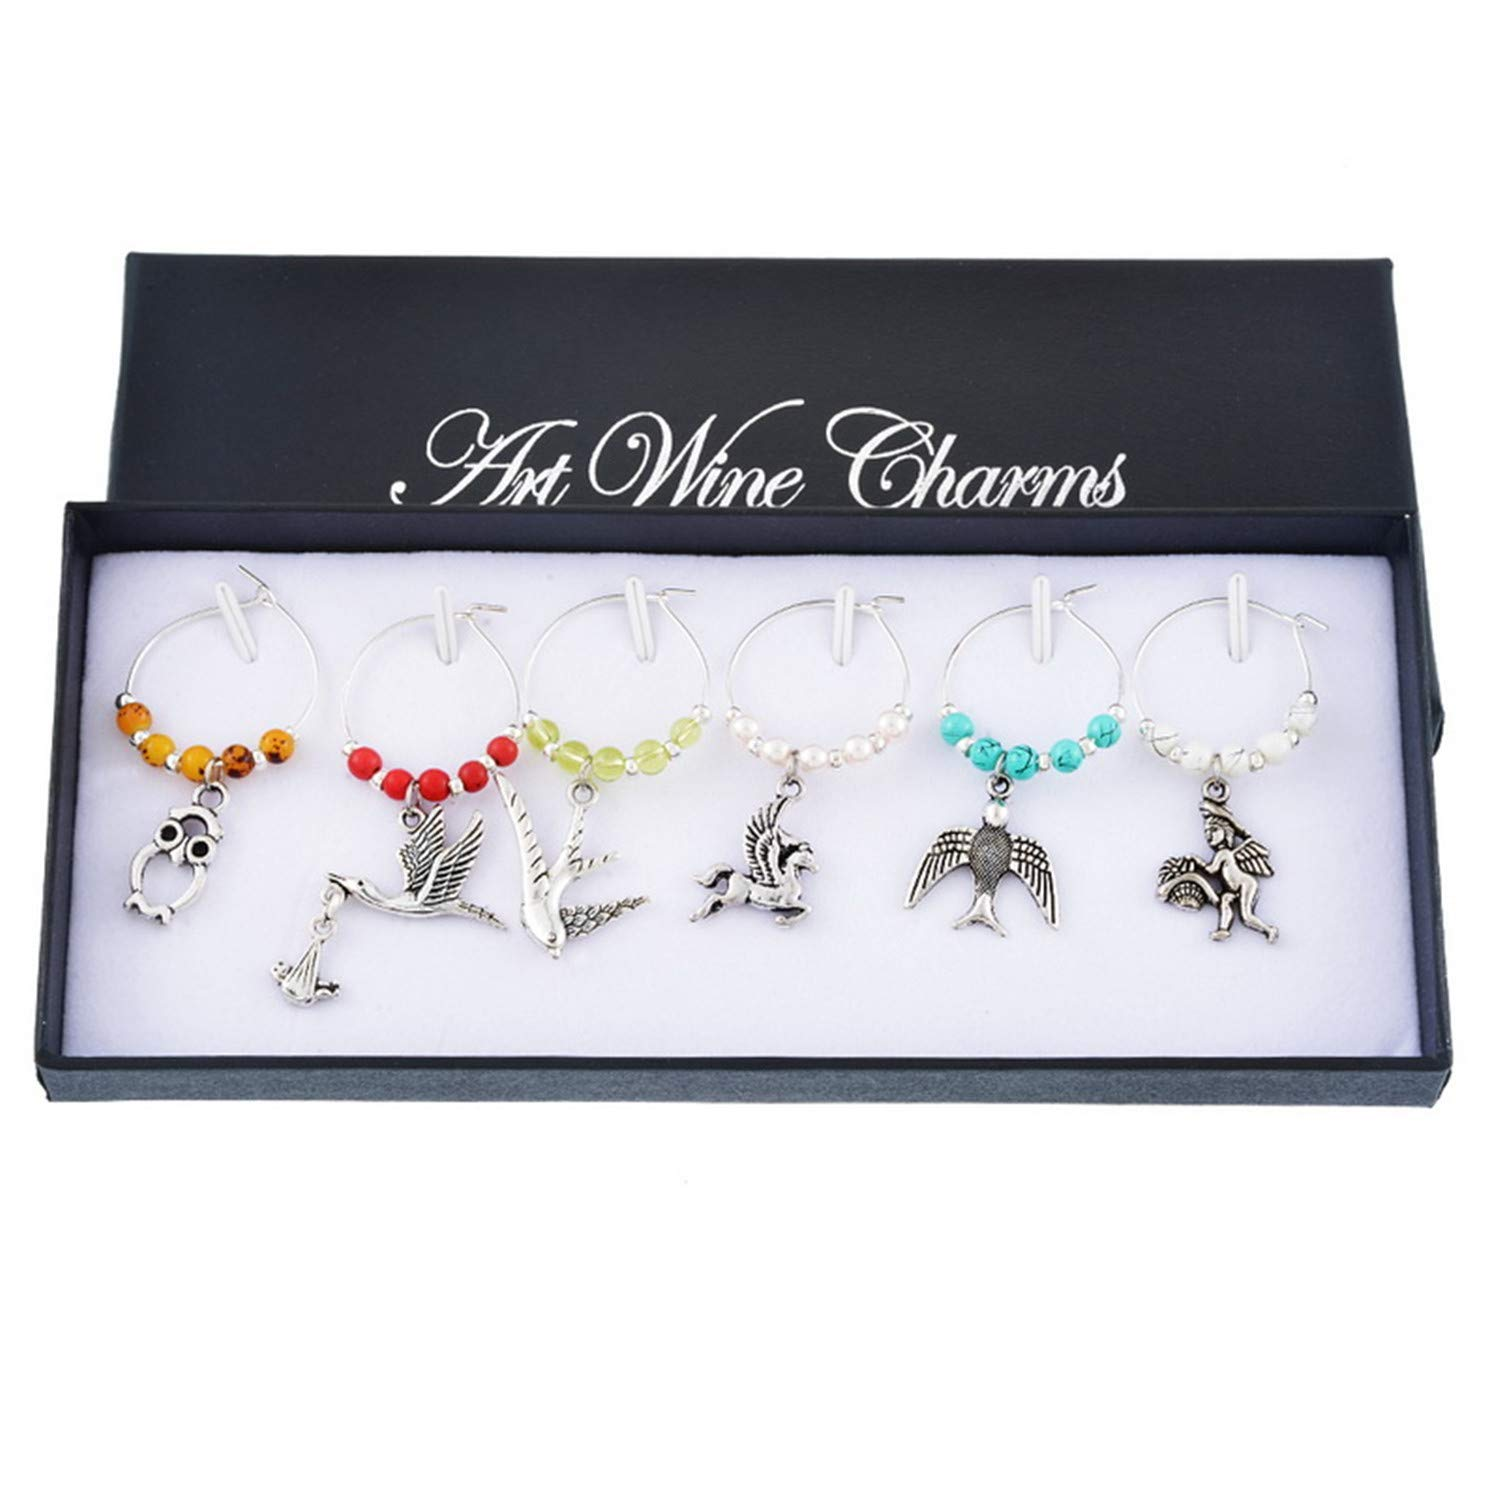 New Year Gift 1Set/6PCs Nature Series Wine Glass Charms Set With Colorful Beads Wine Marker Jewelry For Christmas Table Decor